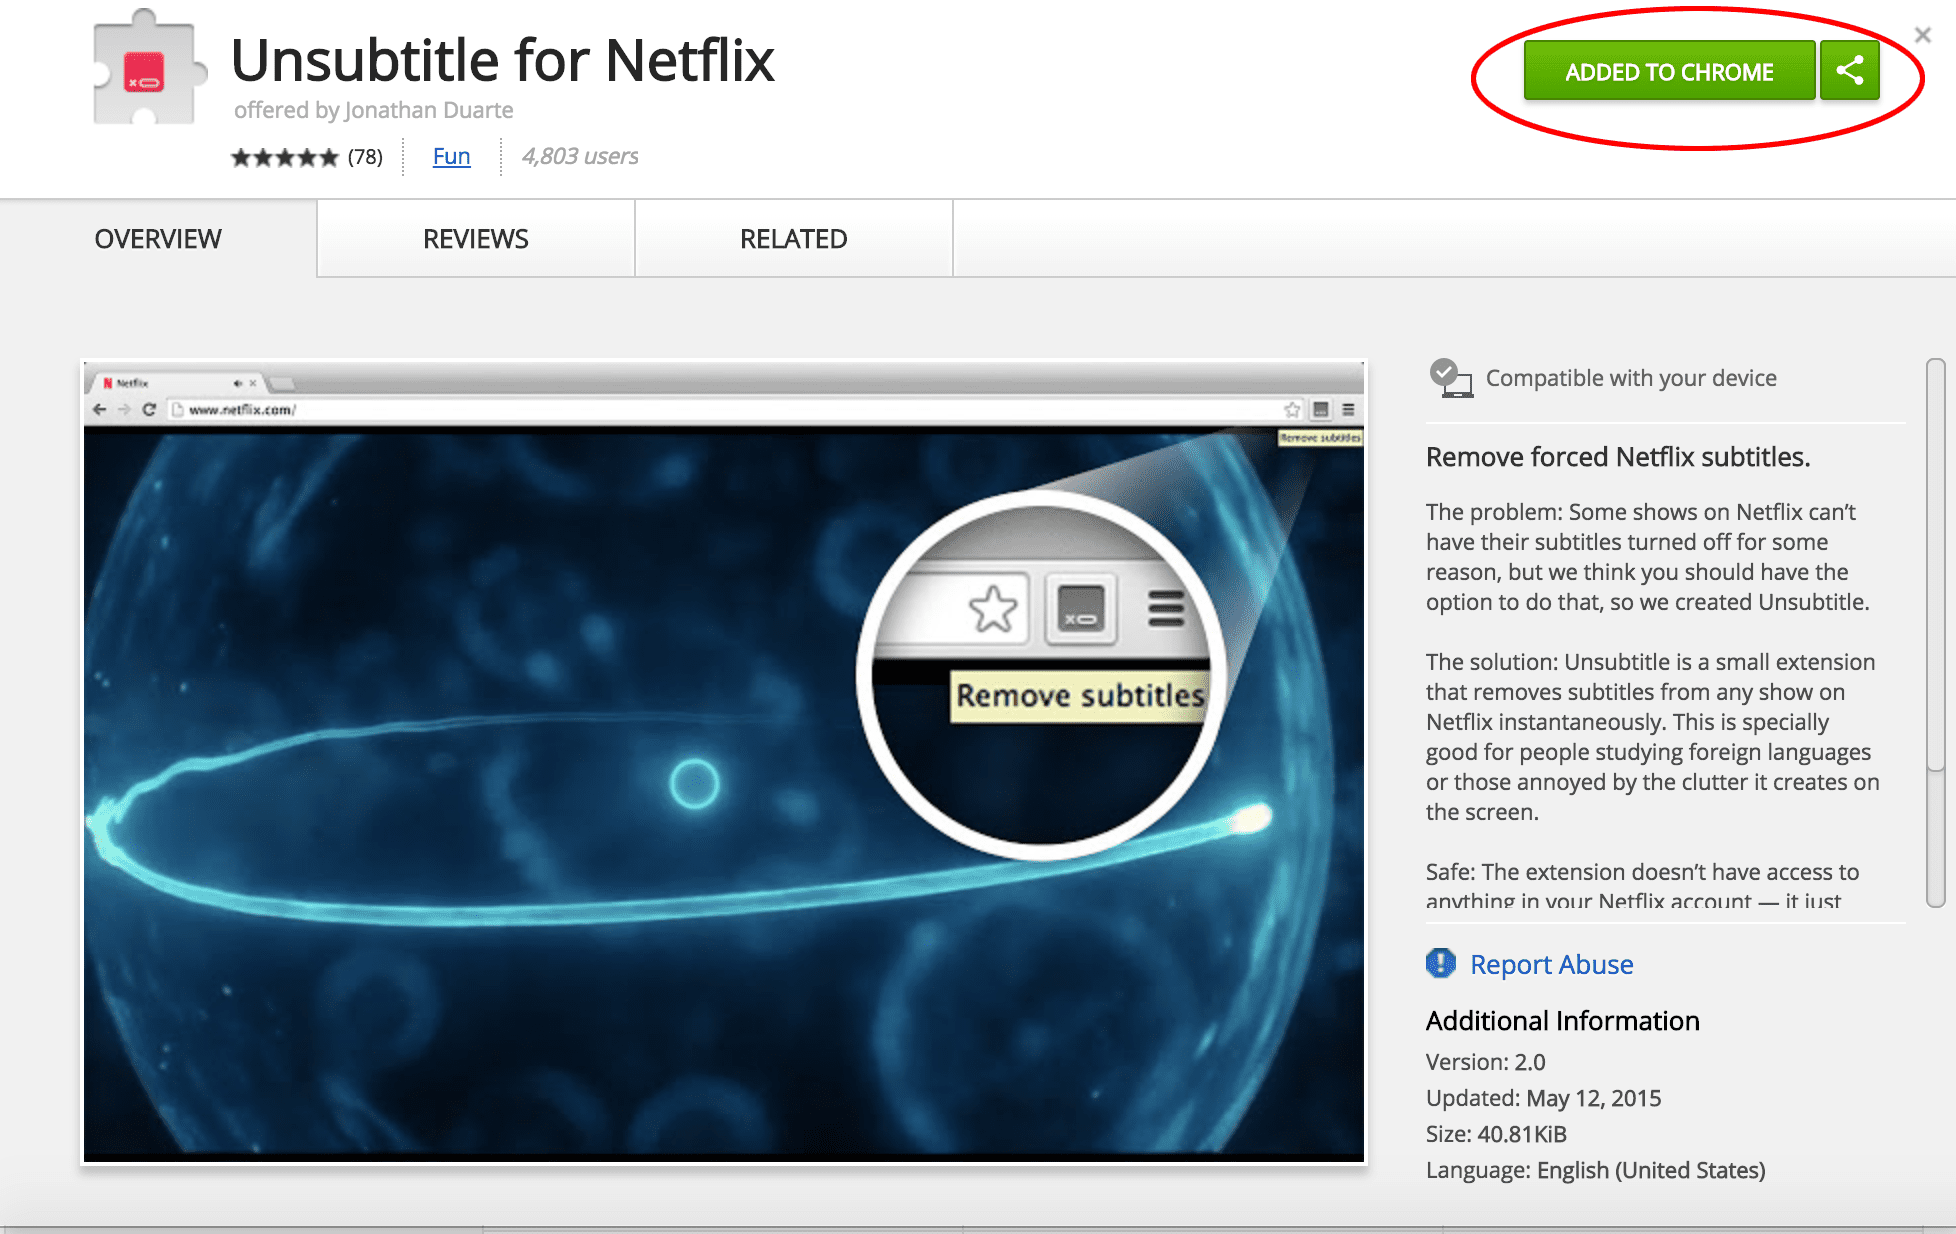 How to Turn off Subtitles on Netflix